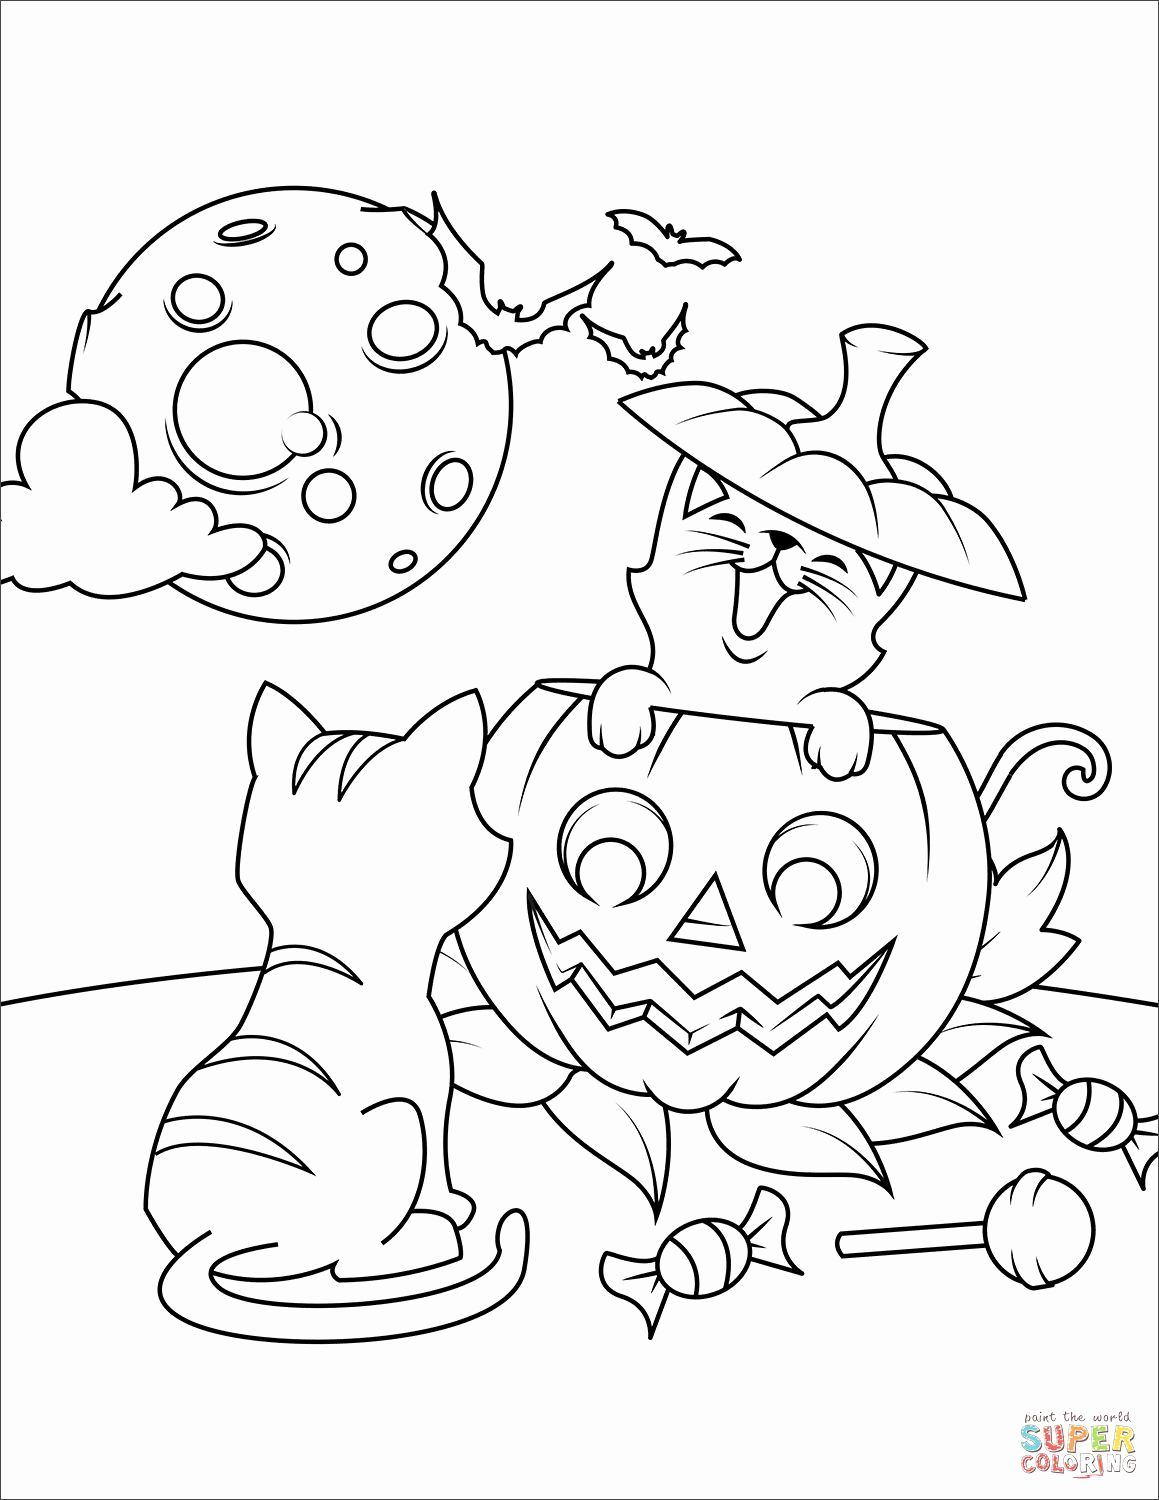 Kids Coloring Pages Jack O'lantern and Cat in 2020